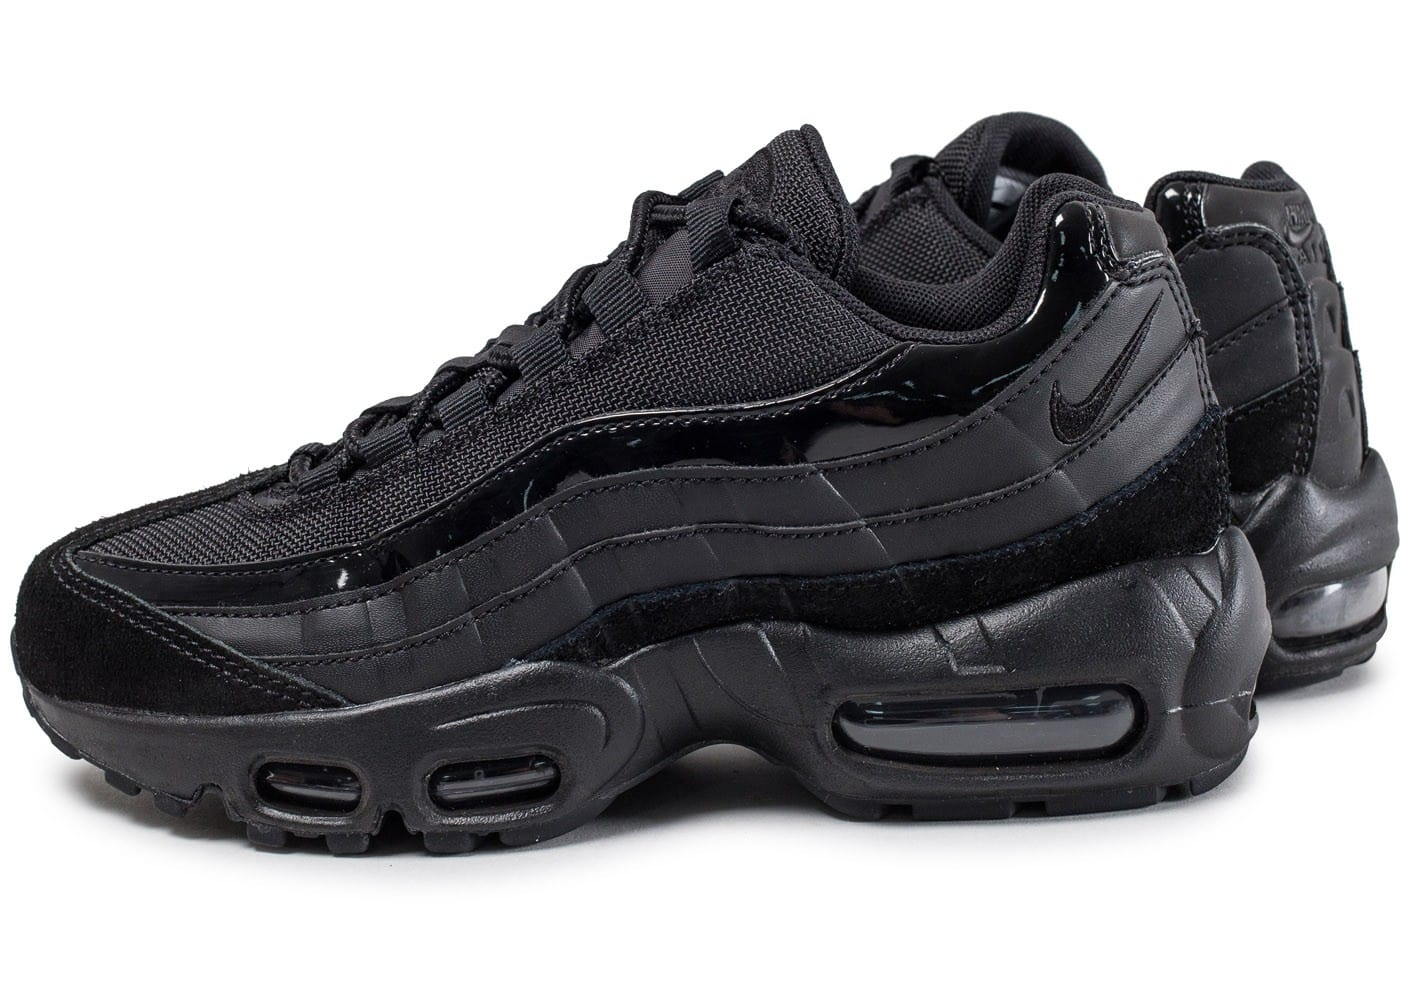 nike air max 95 w noire chaussures femme chausport. Black Bedroom Furniture Sets. Home Design Ideas